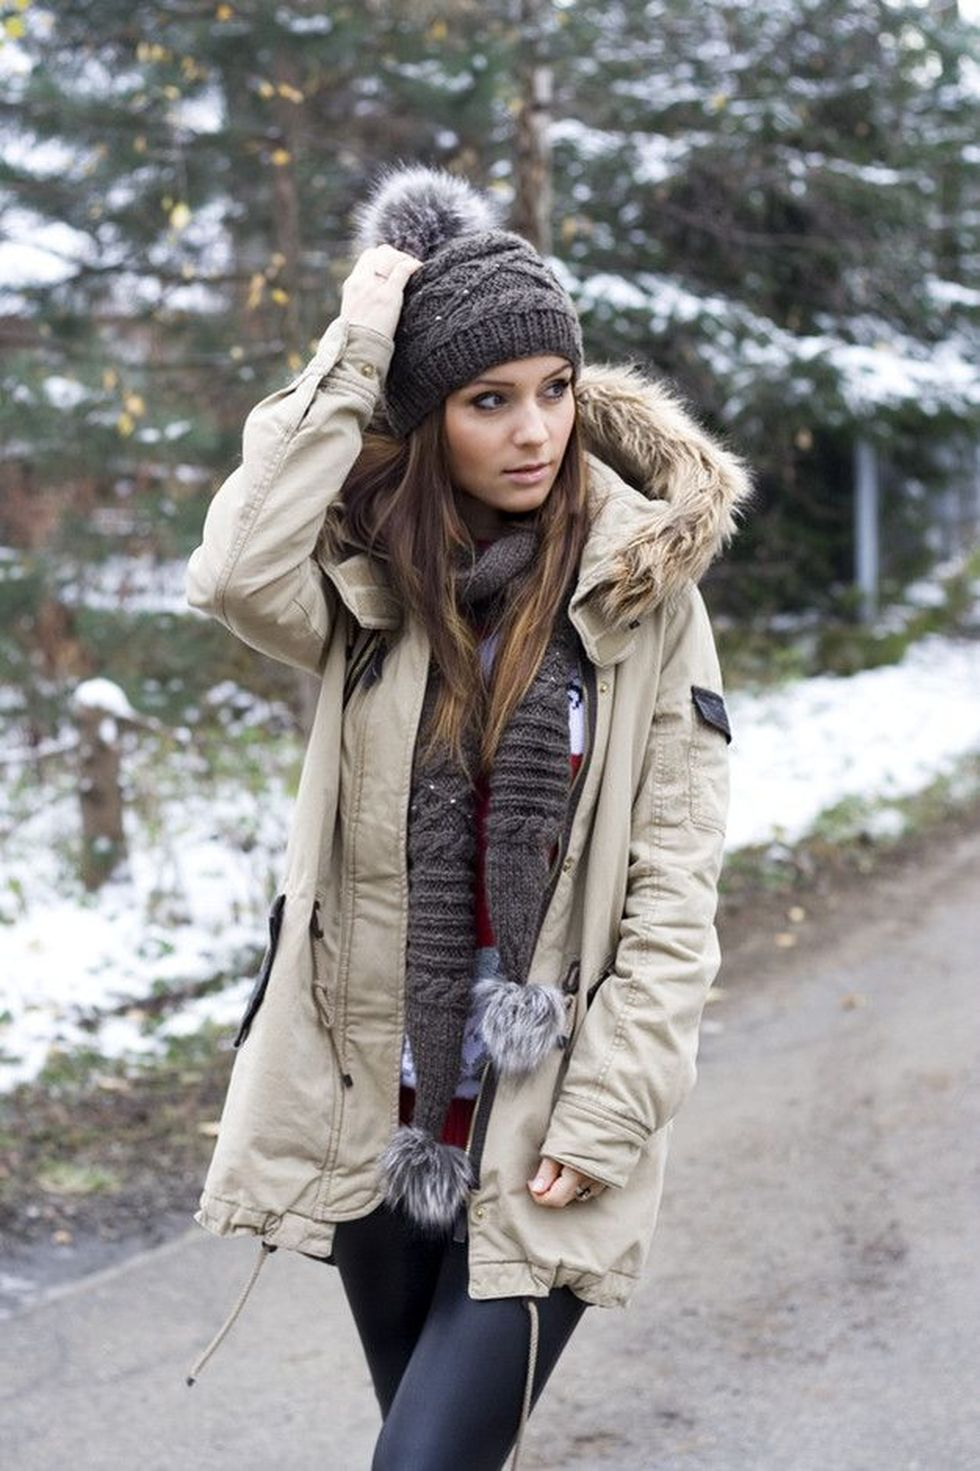 Fashionable Women Hats For Winter And Snow Outfits 54 -5590